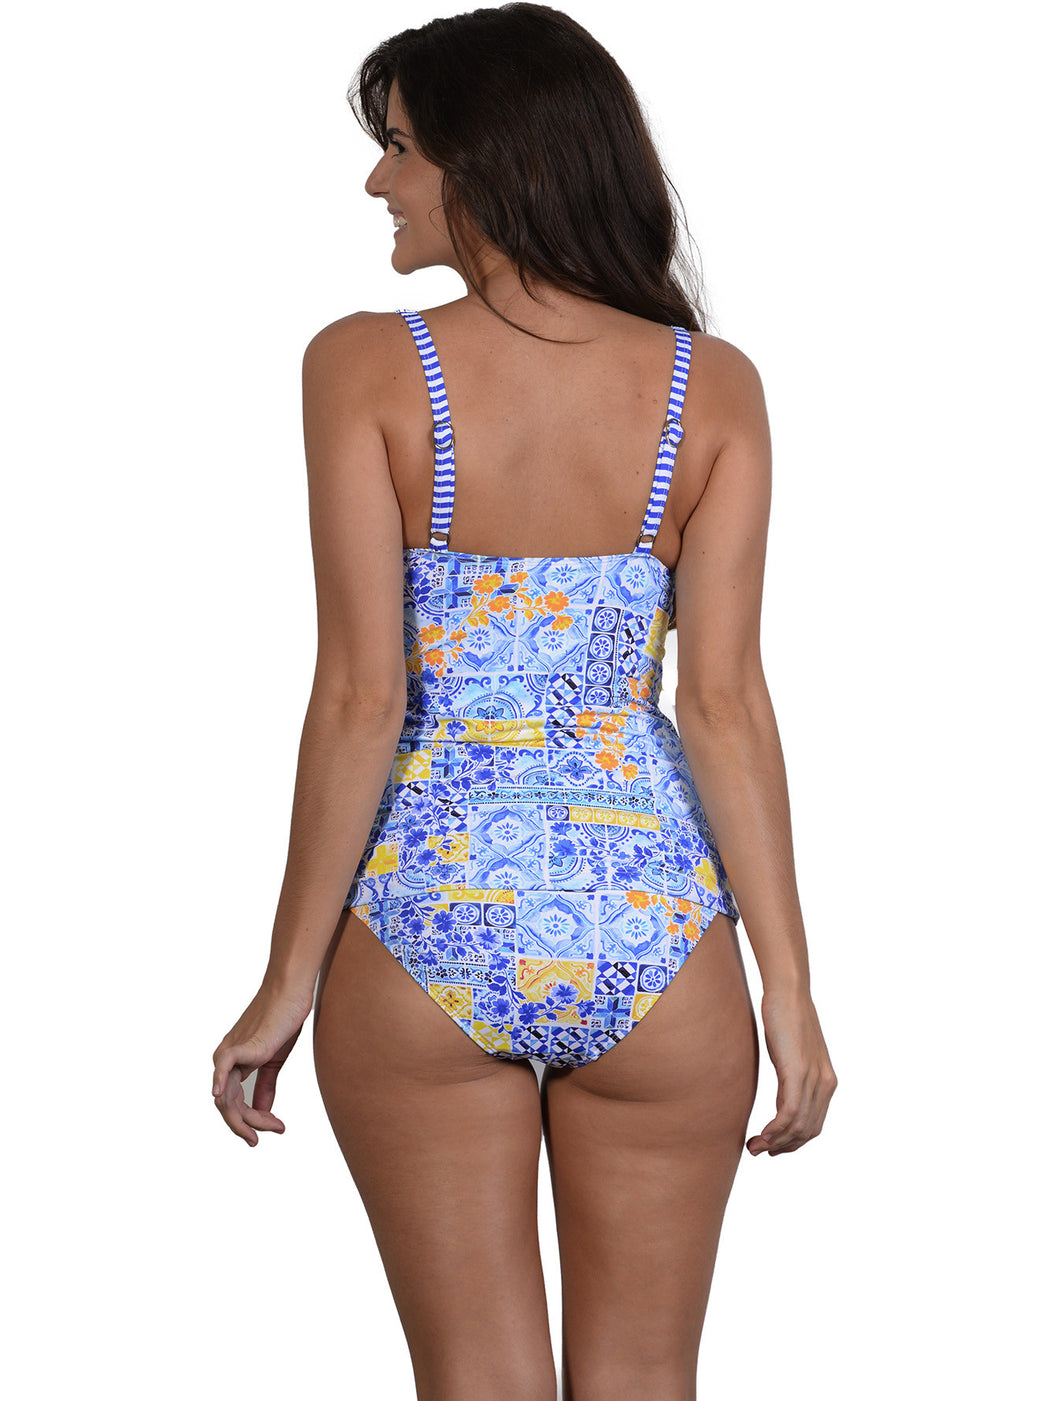 Mosaic D-E Cup Ruched Singlet Top back view